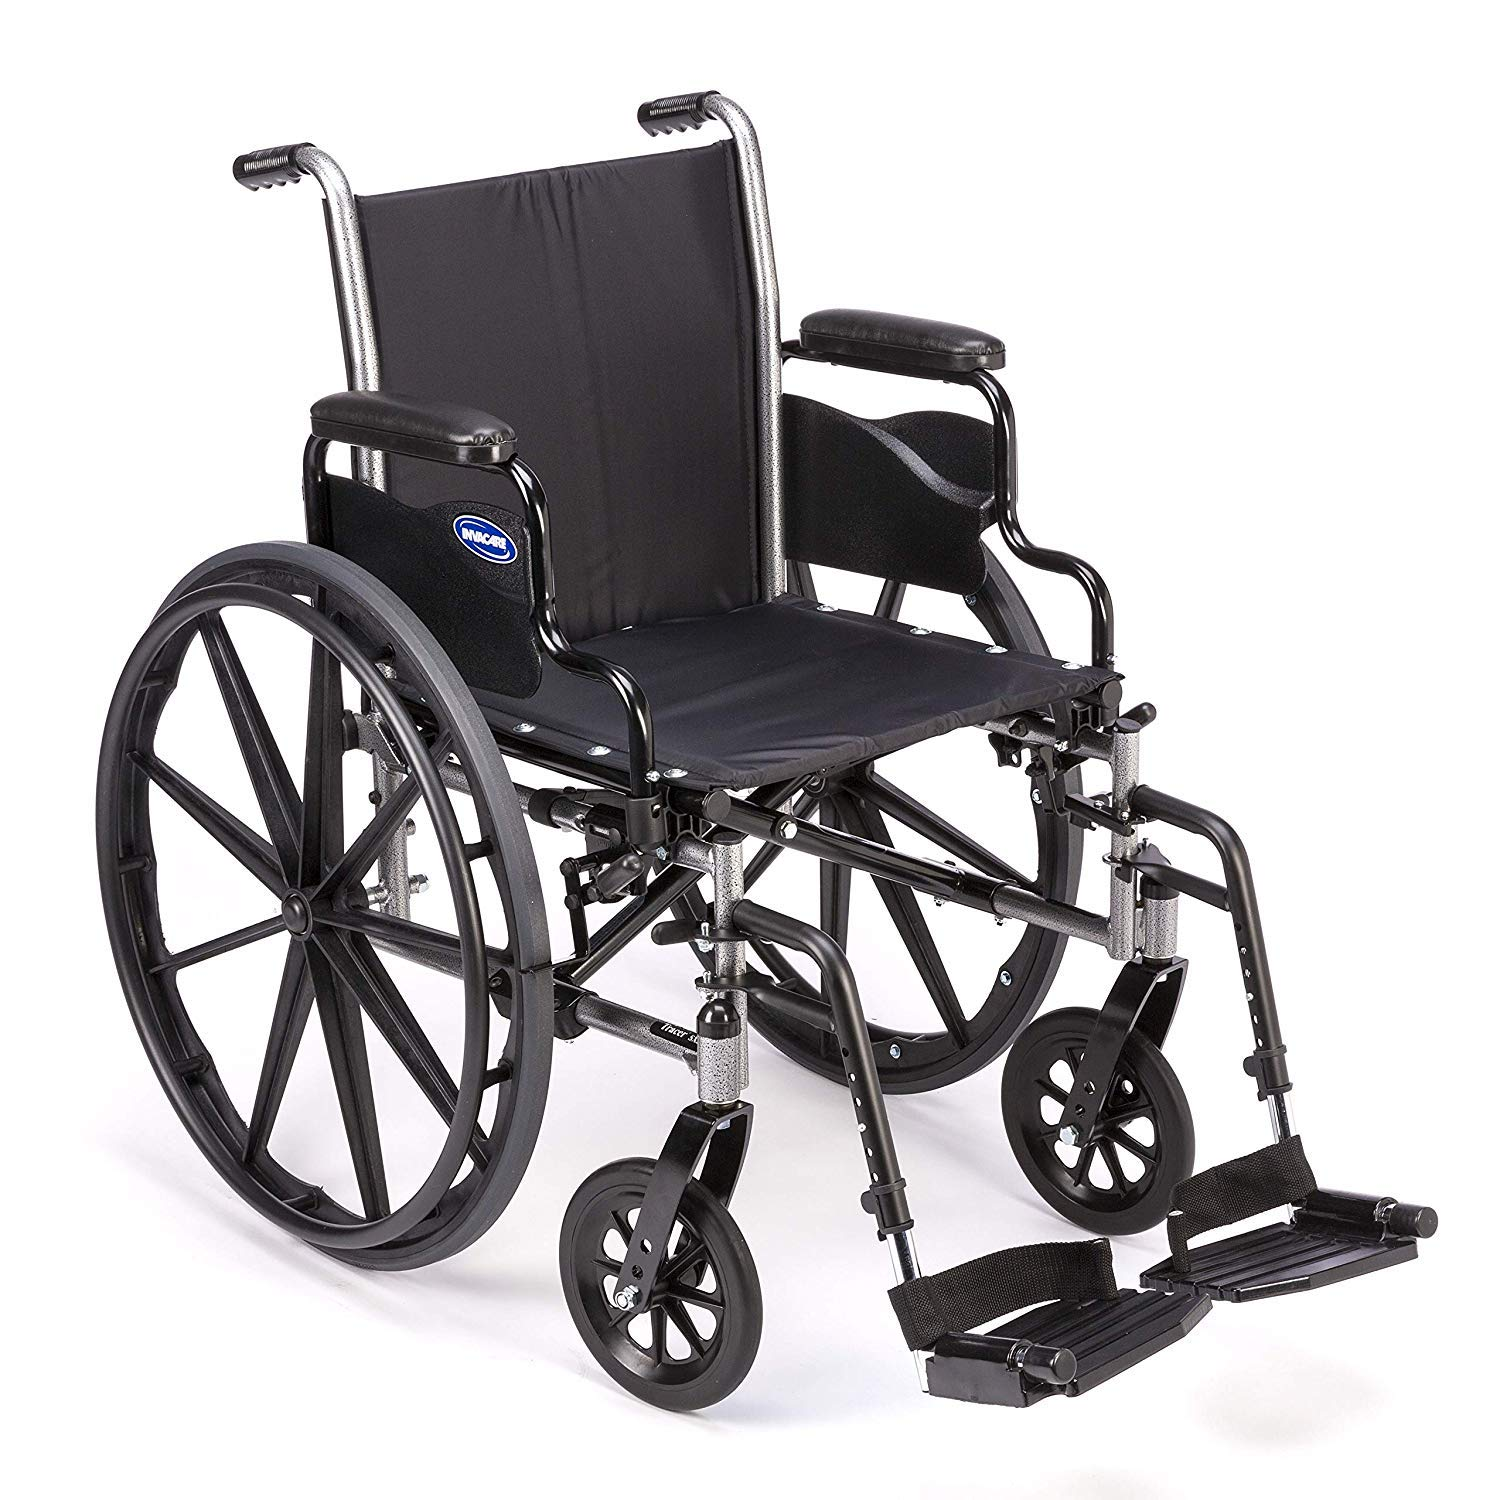 Invacare Tracer SX5 Wheelchair, with Desk Length Arms and T93HAP Hemi Footrests with Heel Loops, 22